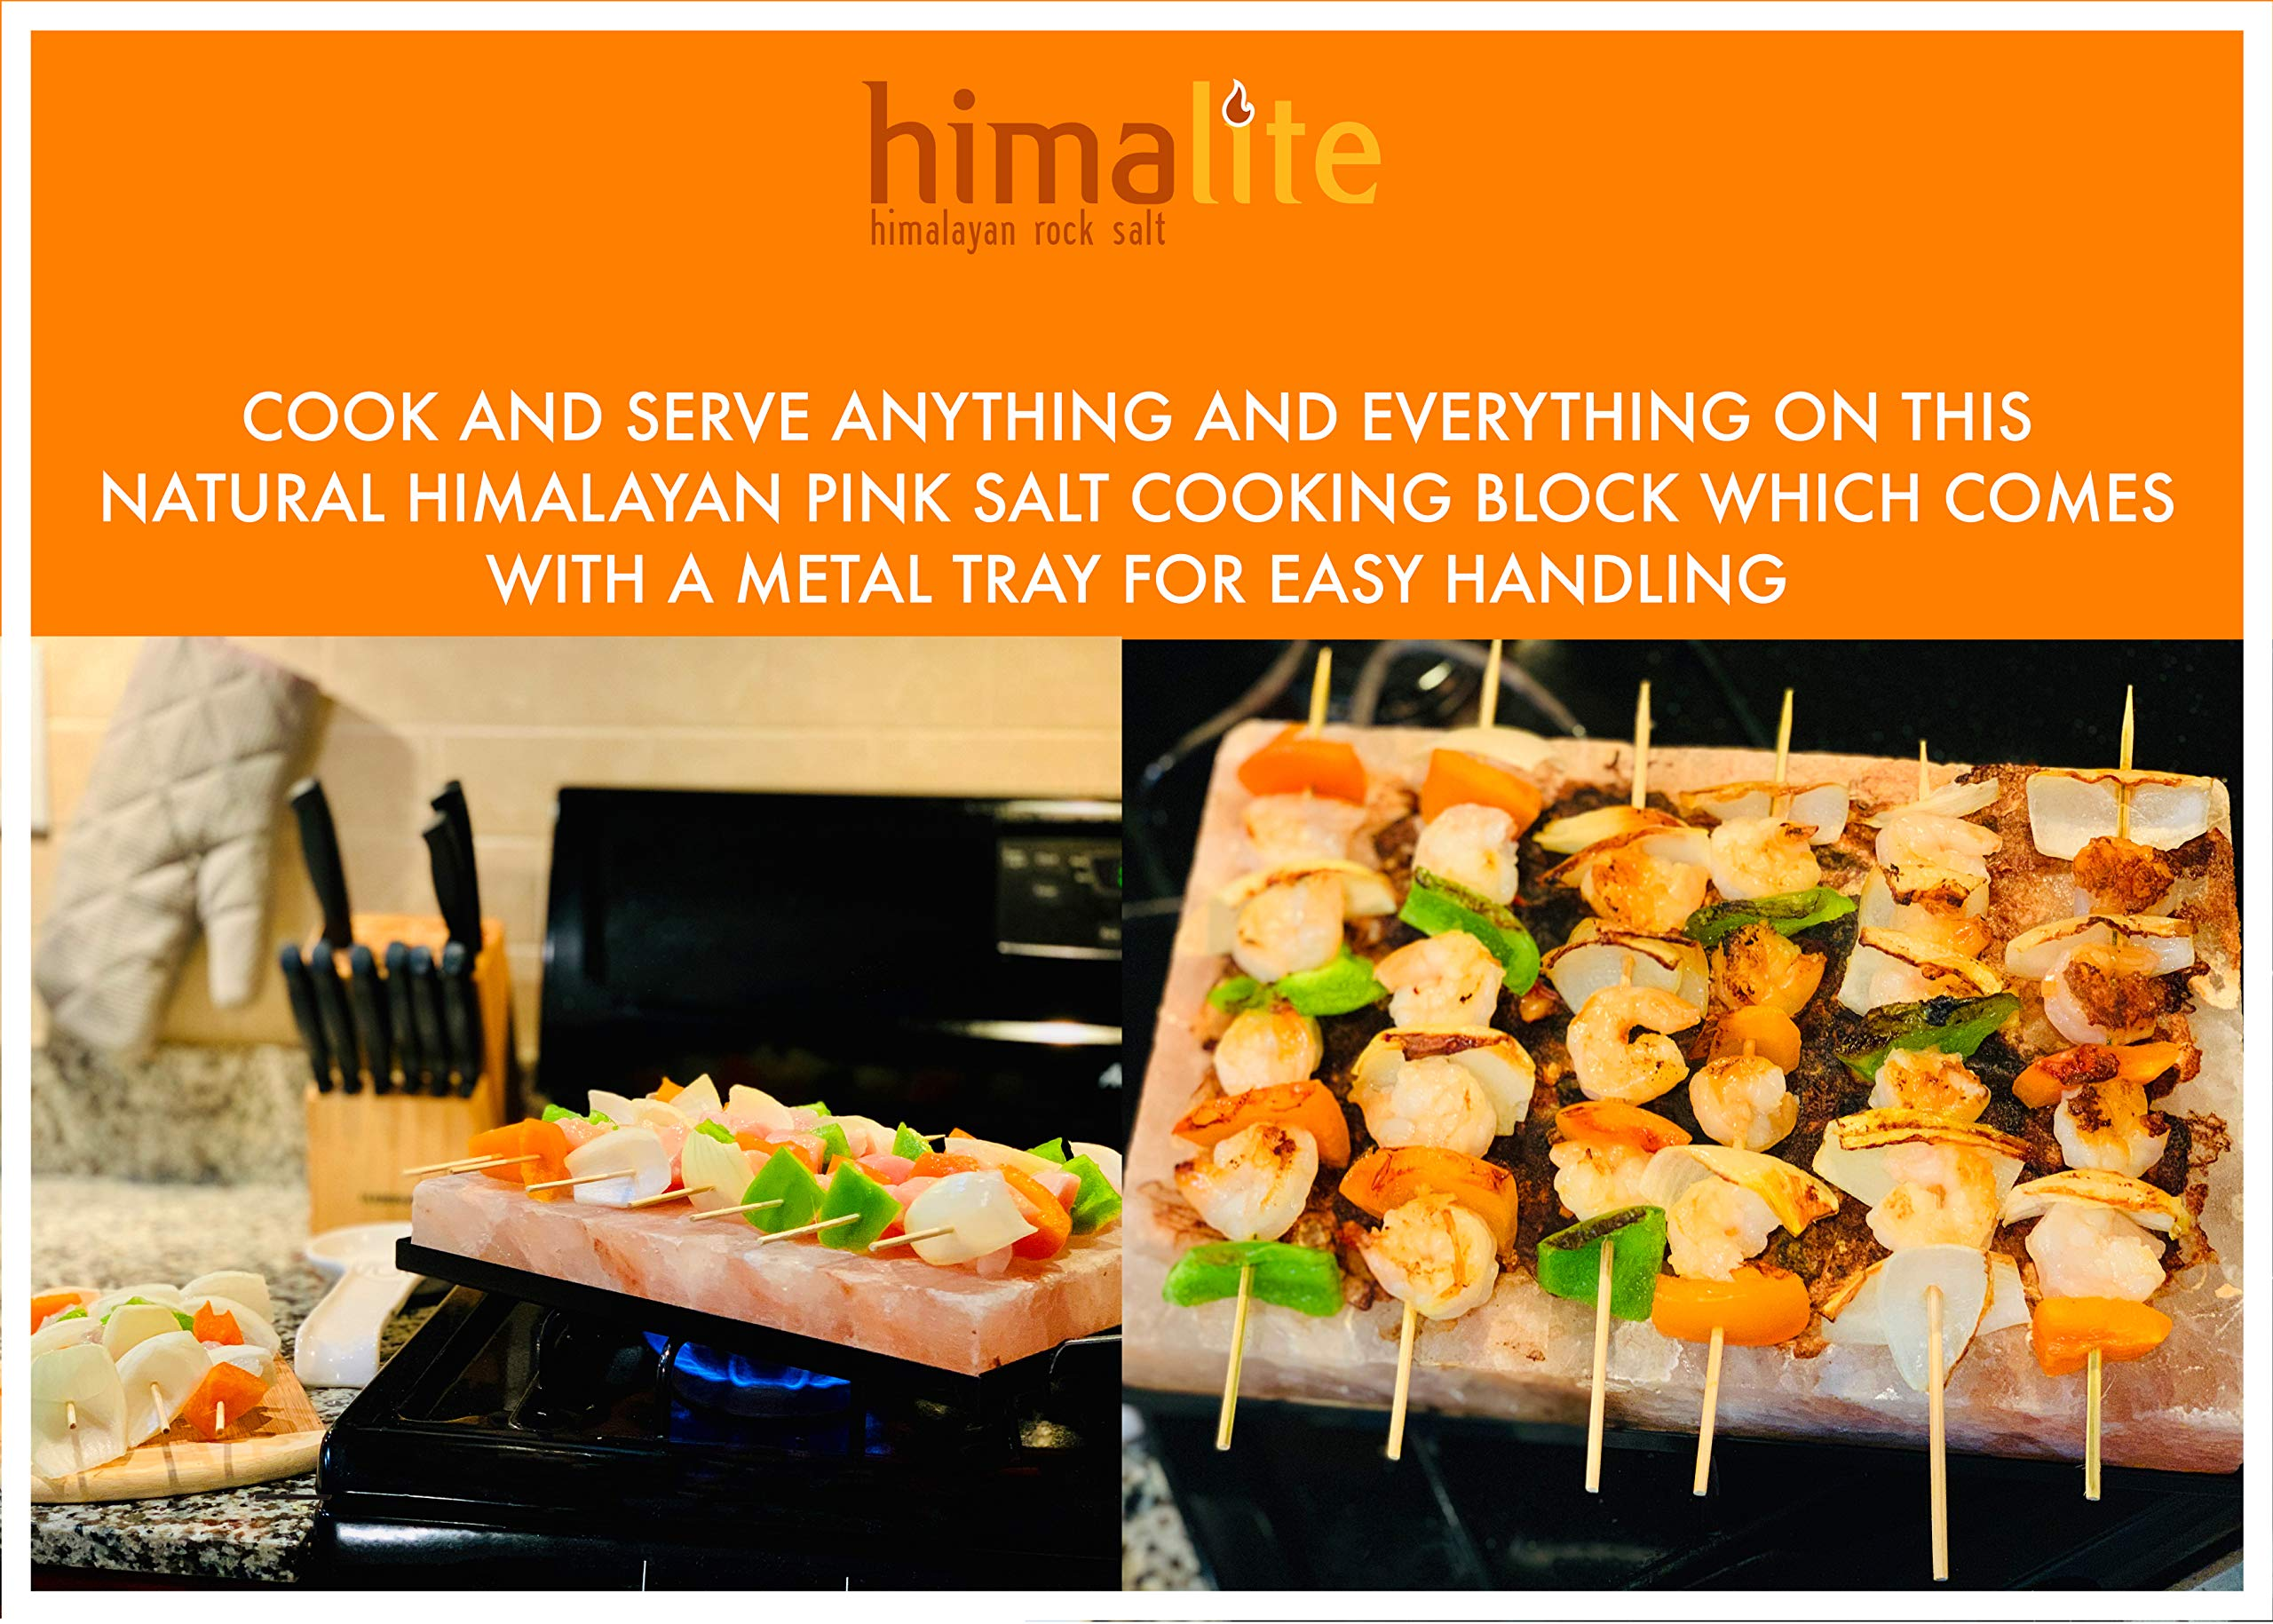 Himalite Himalayan Pink Salt Cooking Block and Tray Set 12'' x 8'' x 1.5'' for Cooking, Grilling, Cutting and Serving with Metal Tray Himalayan Rock Salt by Himalite (Image #5)